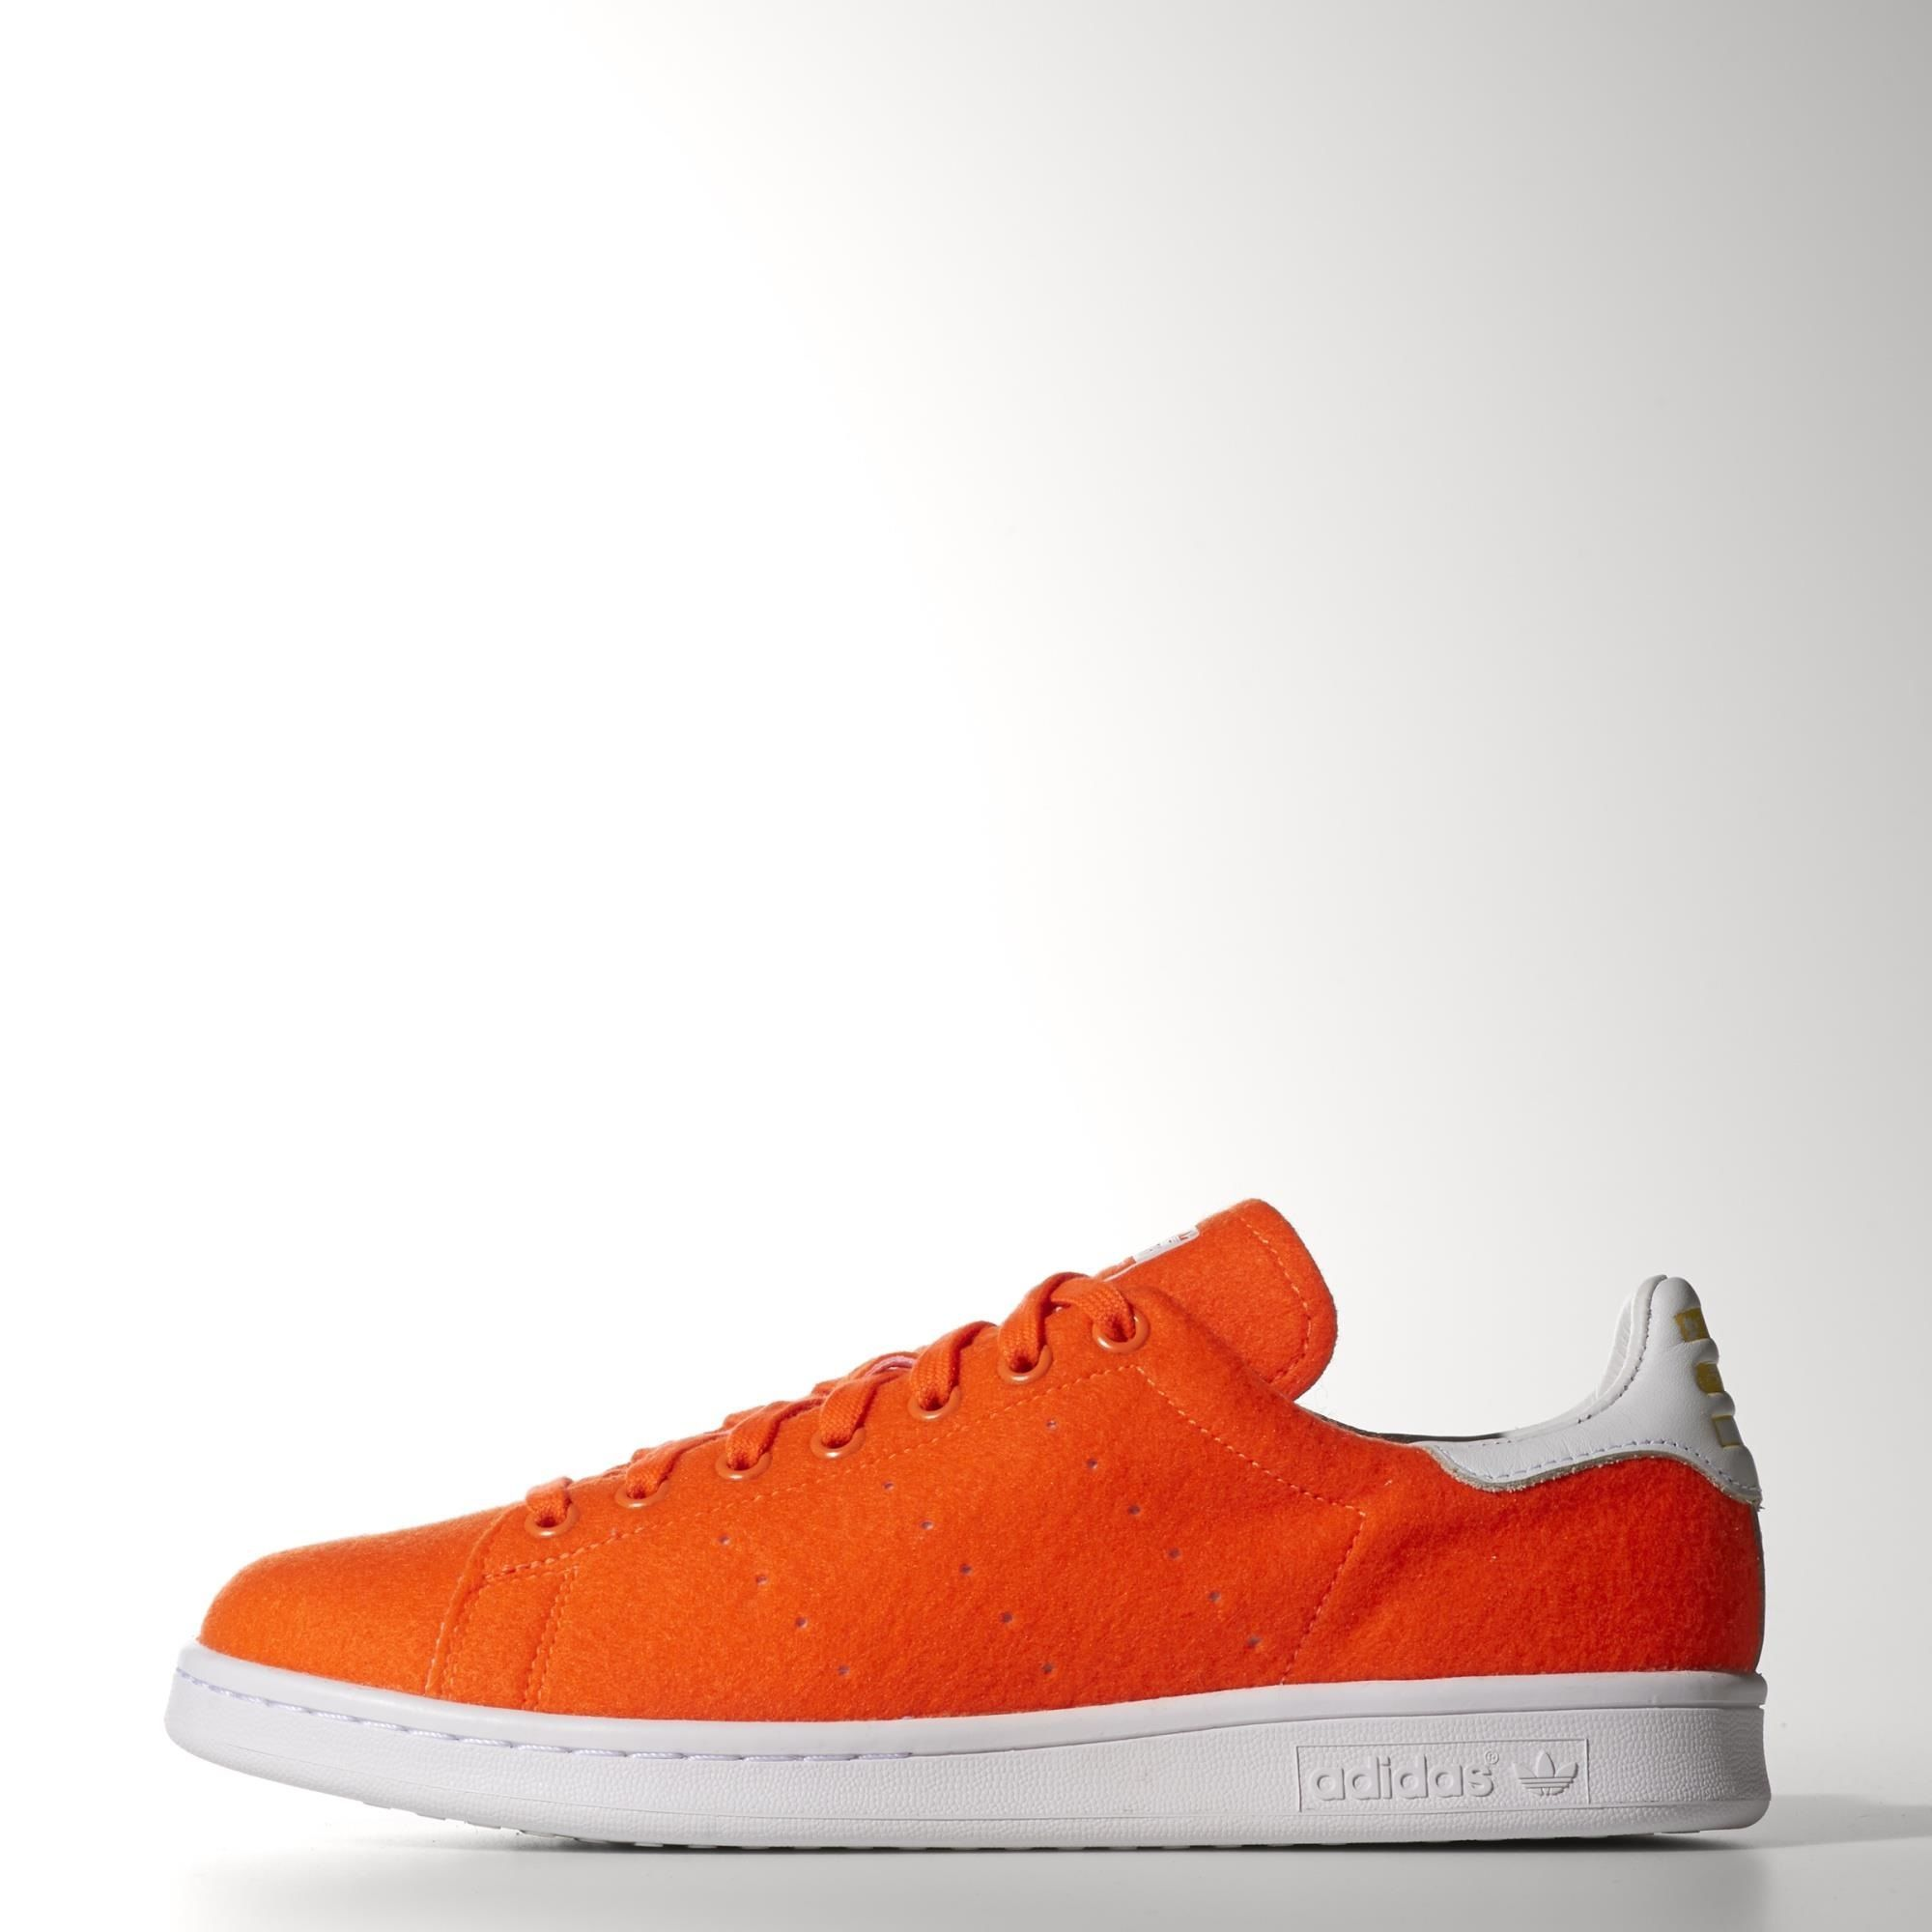 adidas - Pharrell Williams Stan Smith Tennis Shoes they also have an orange  polka dot and